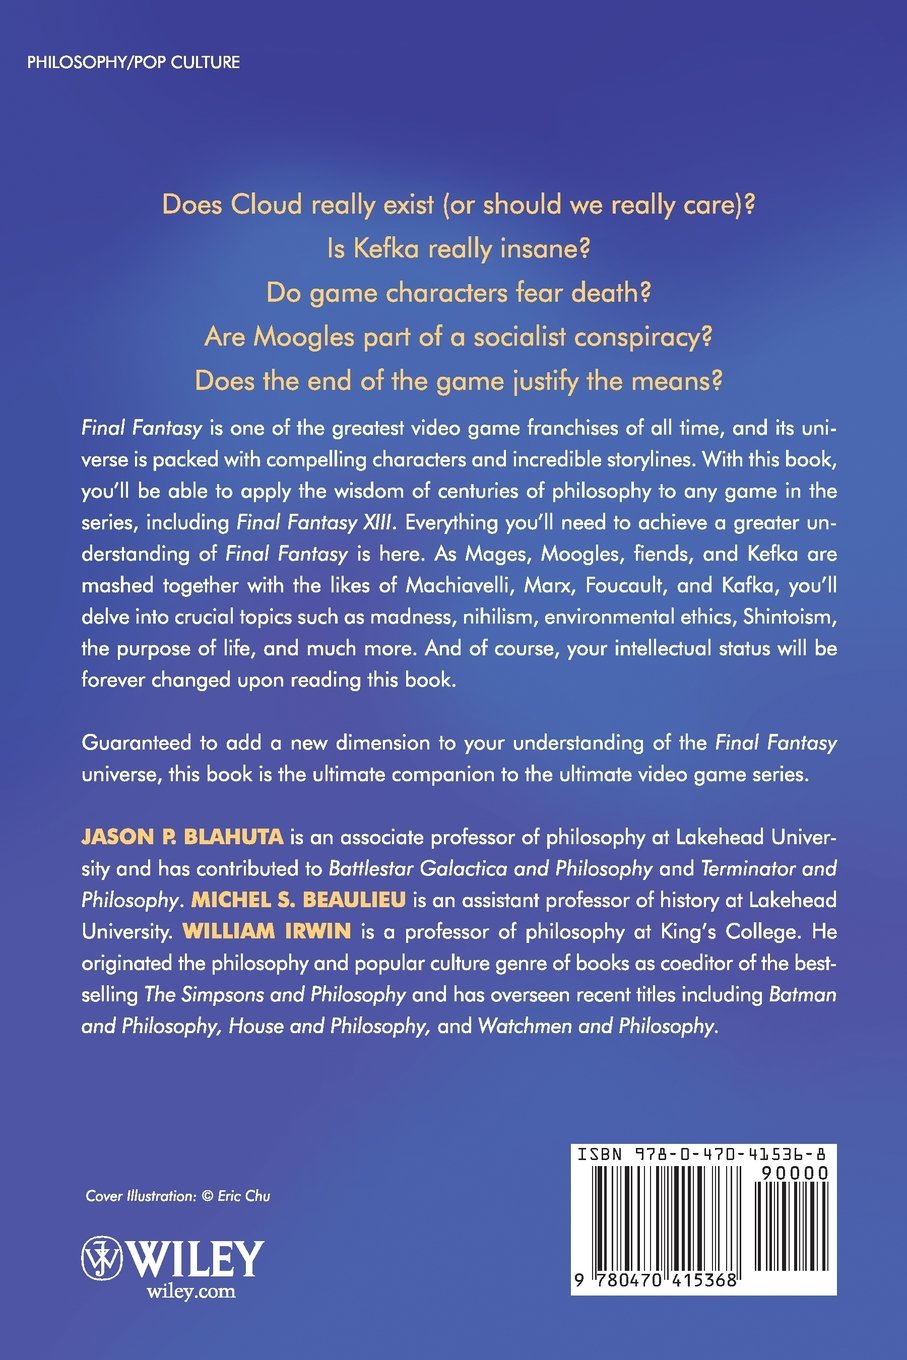 final fantasy and philosophy the ultimate walkthrough jason p final fantasy and philosophy the ultimate walkthrough jason p blahuta michel s beaulieu william irwin 9780470415368 books ca